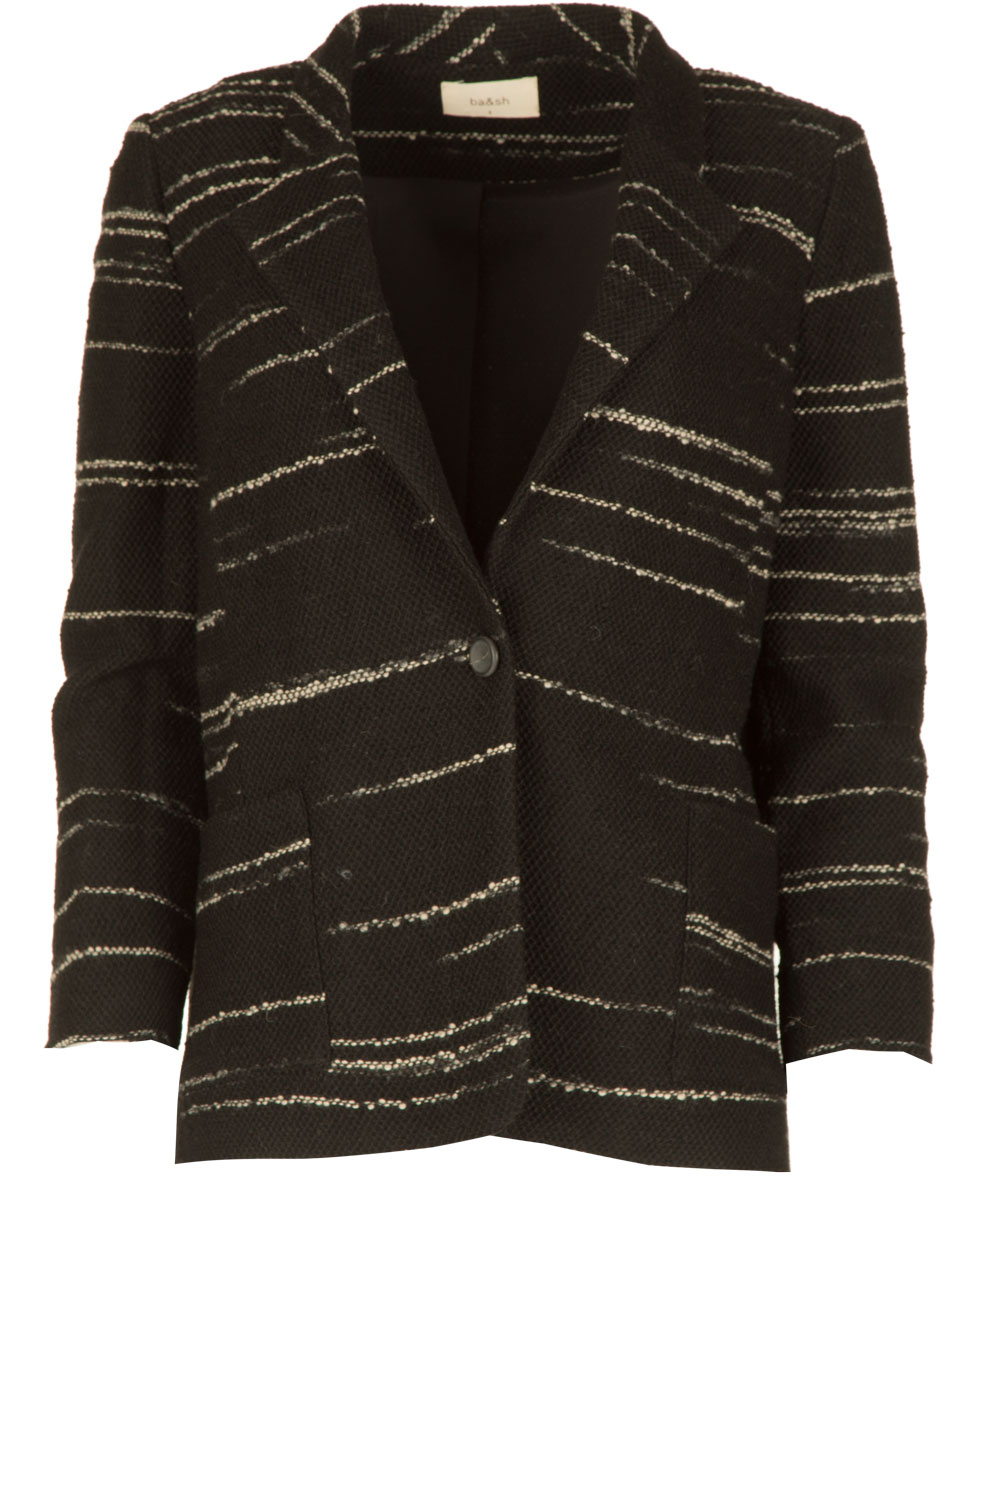 Sting Kleding.Coat Sting Black Ba Sh Little Soho